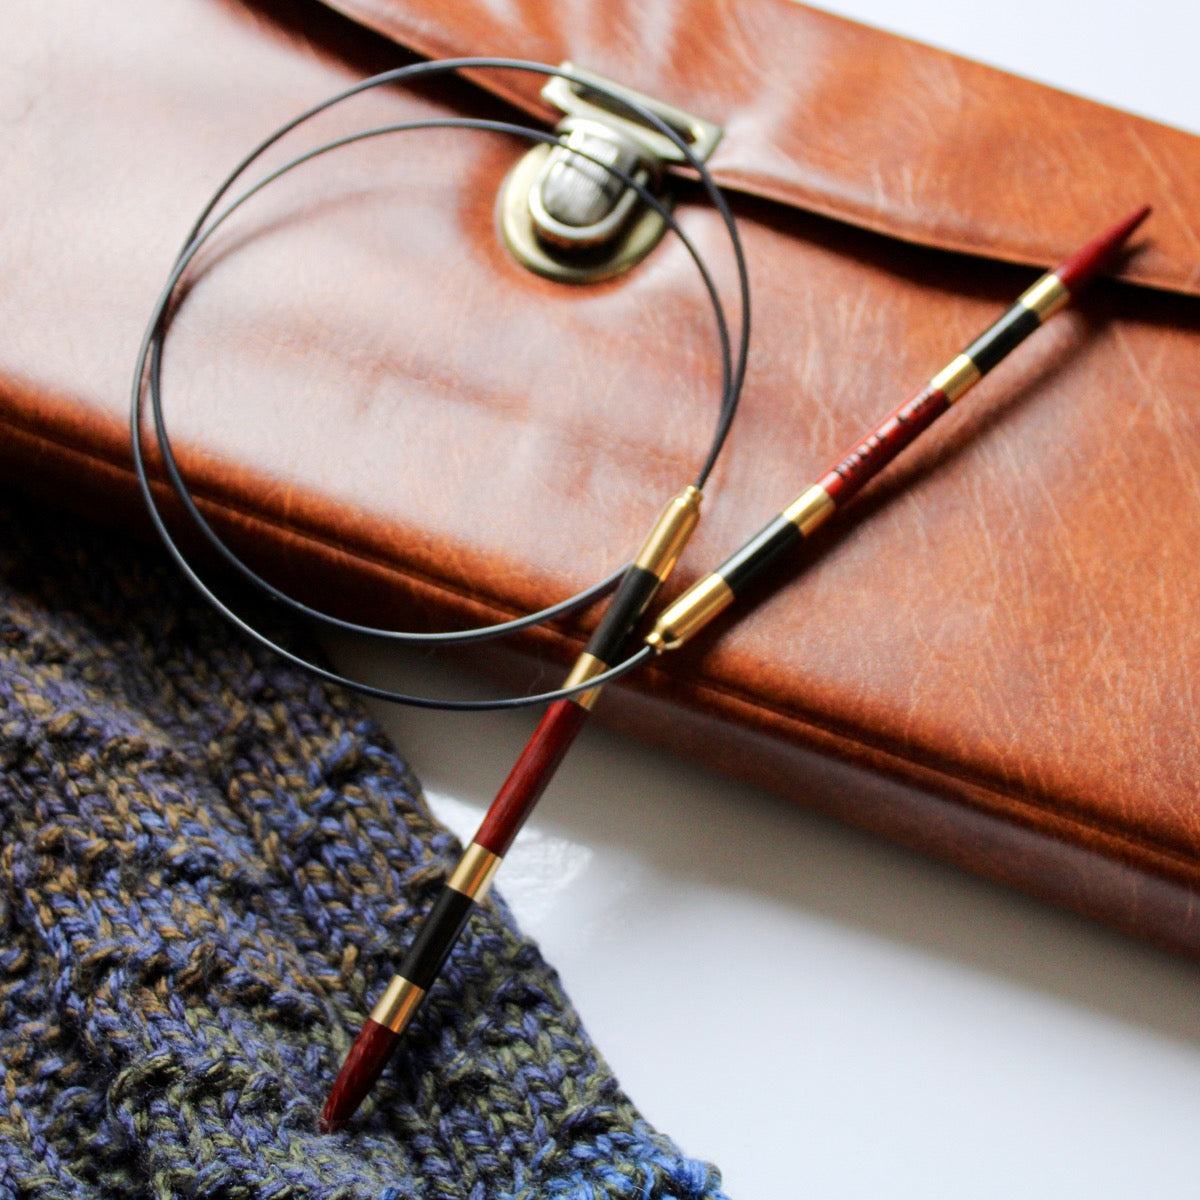 blue odyssey crochet hook from furls